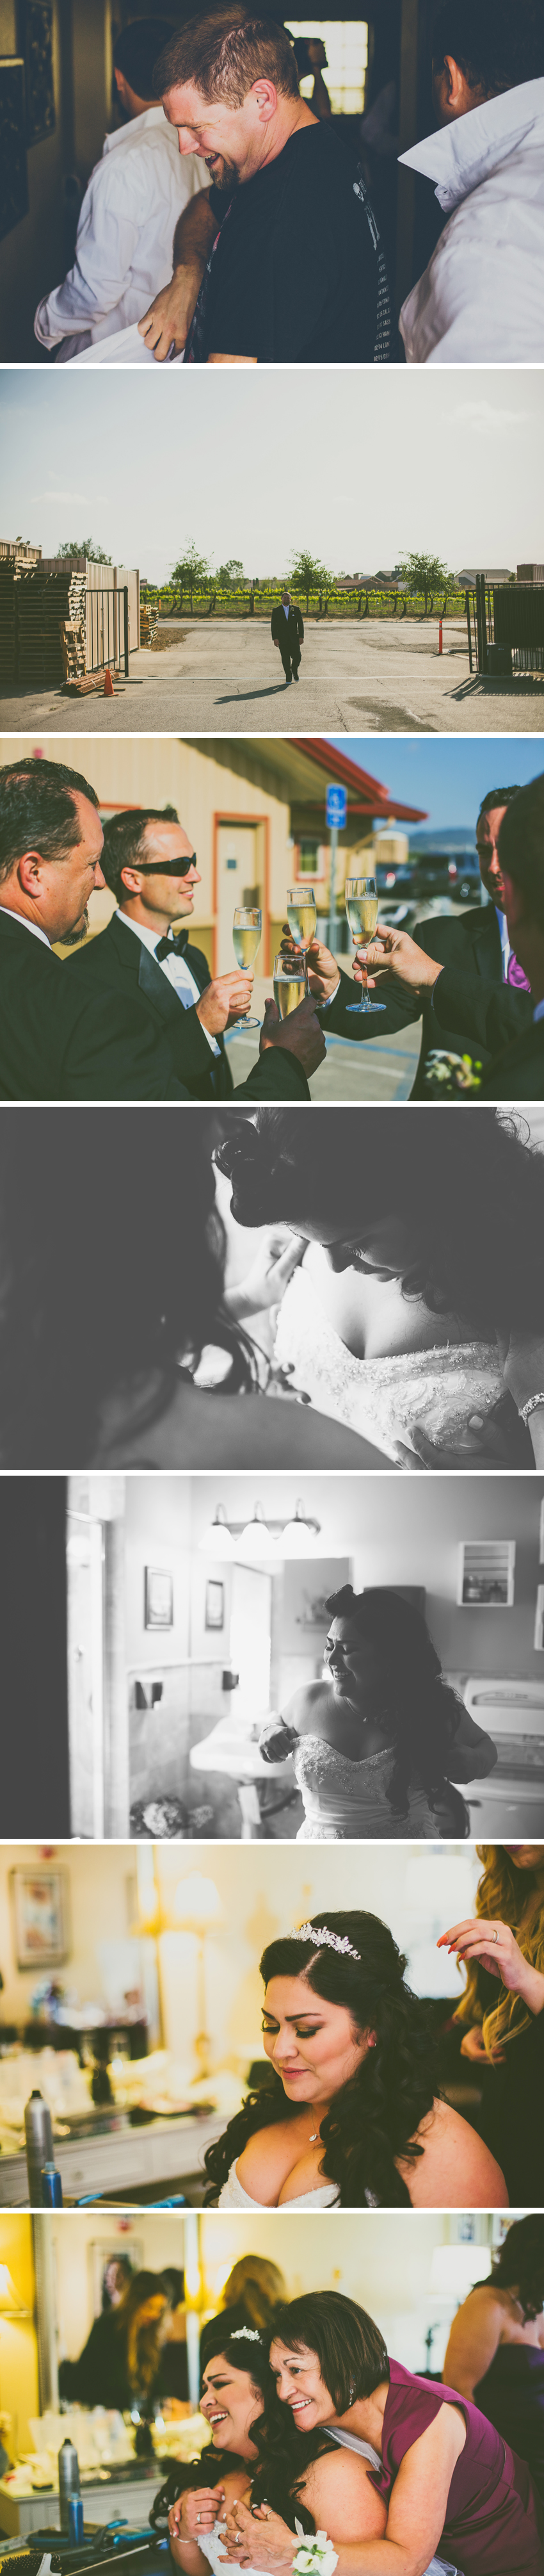 Wiens-wedding-photos4